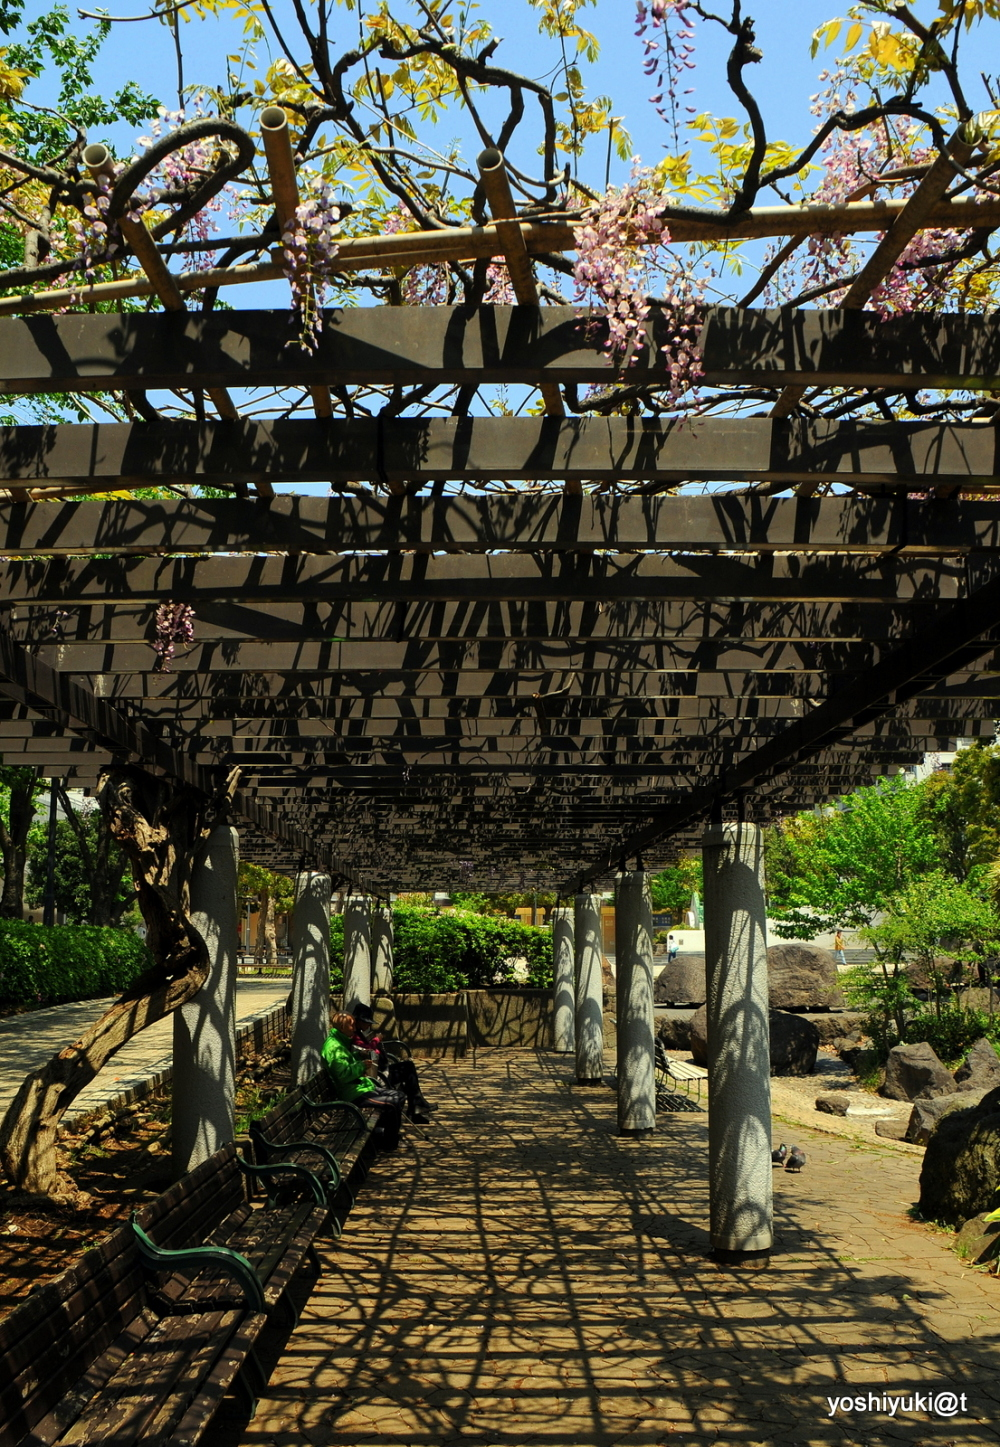 Under the pergola with old wisterias